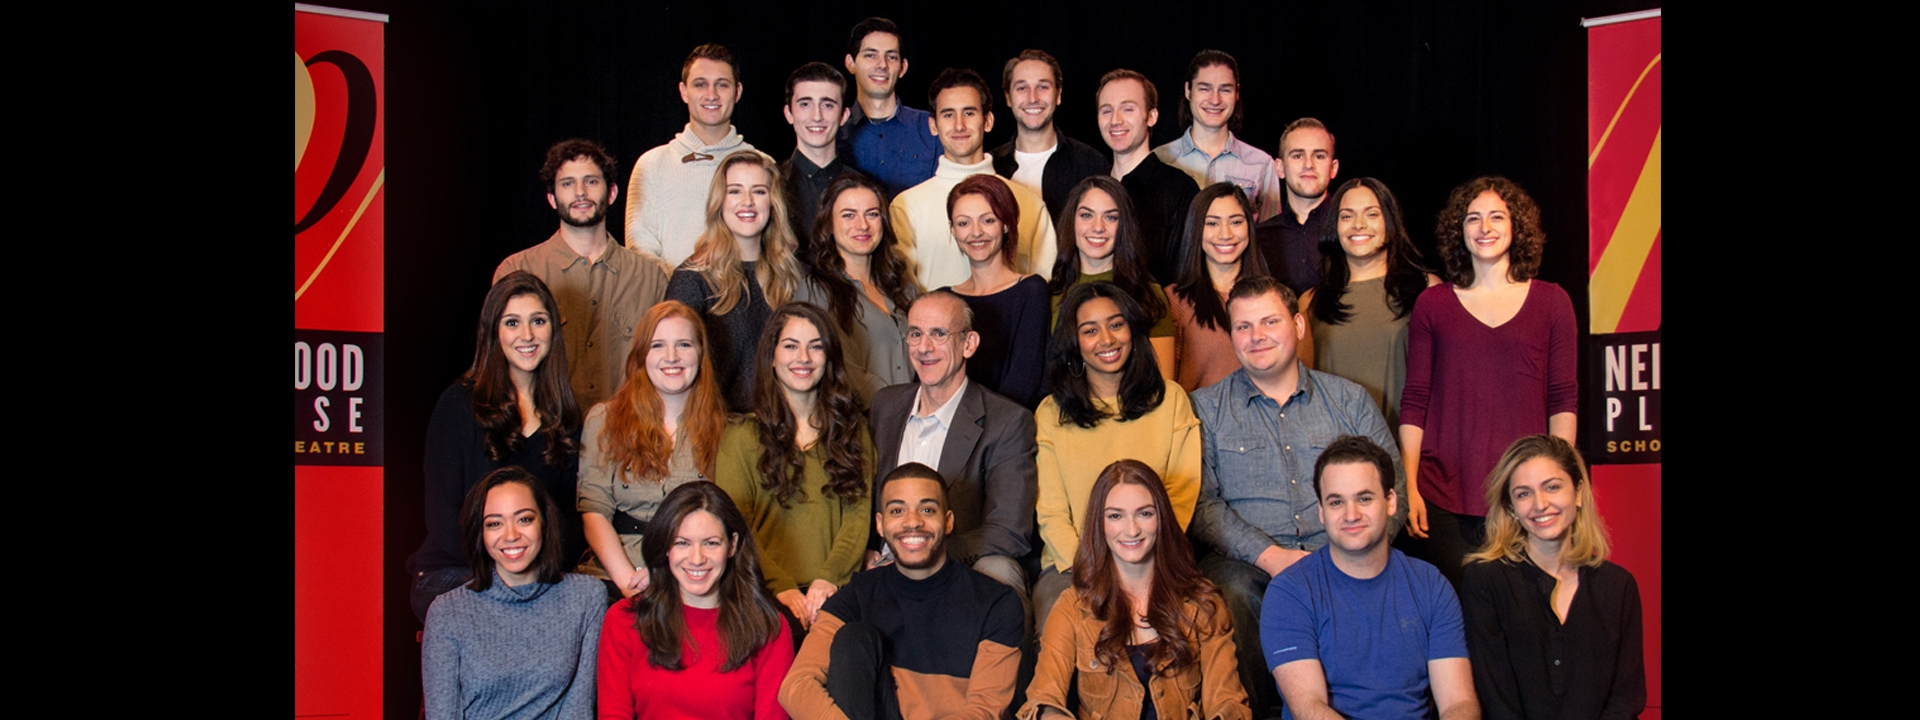 The Class of 2017 joins an 89 year legacy of excellence in actor training.